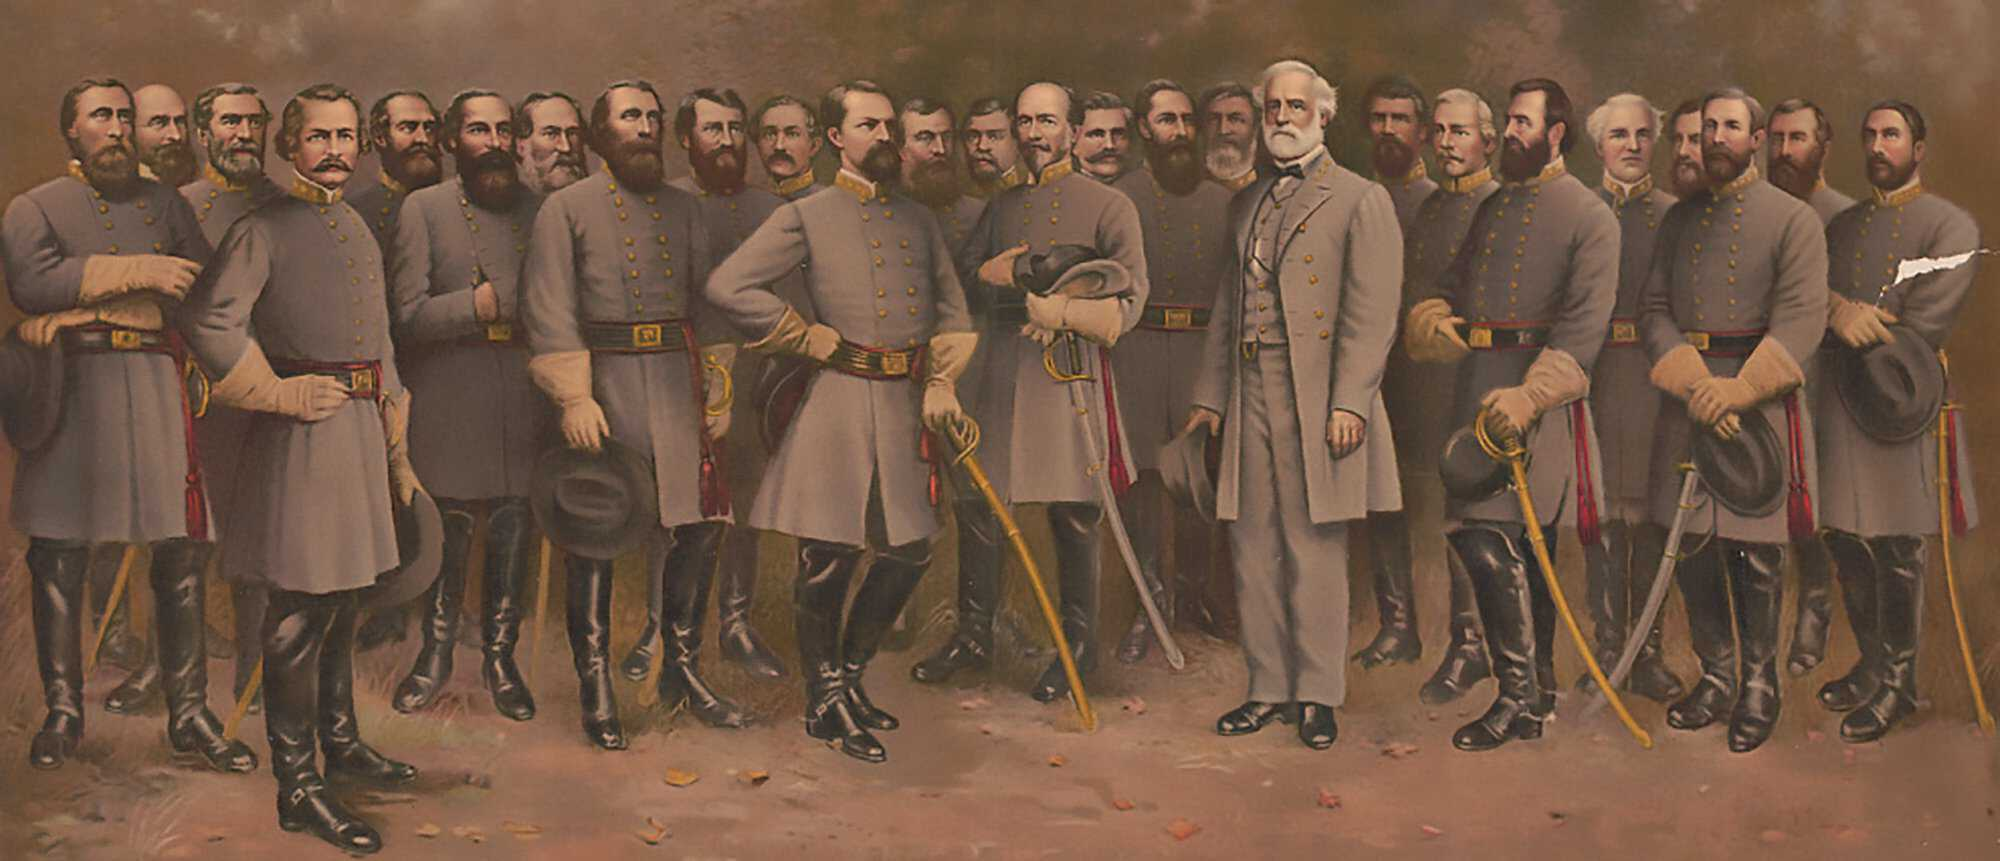 Lee-letters-Feature-Lee-with-his-generals-LOC-1907-.jpg